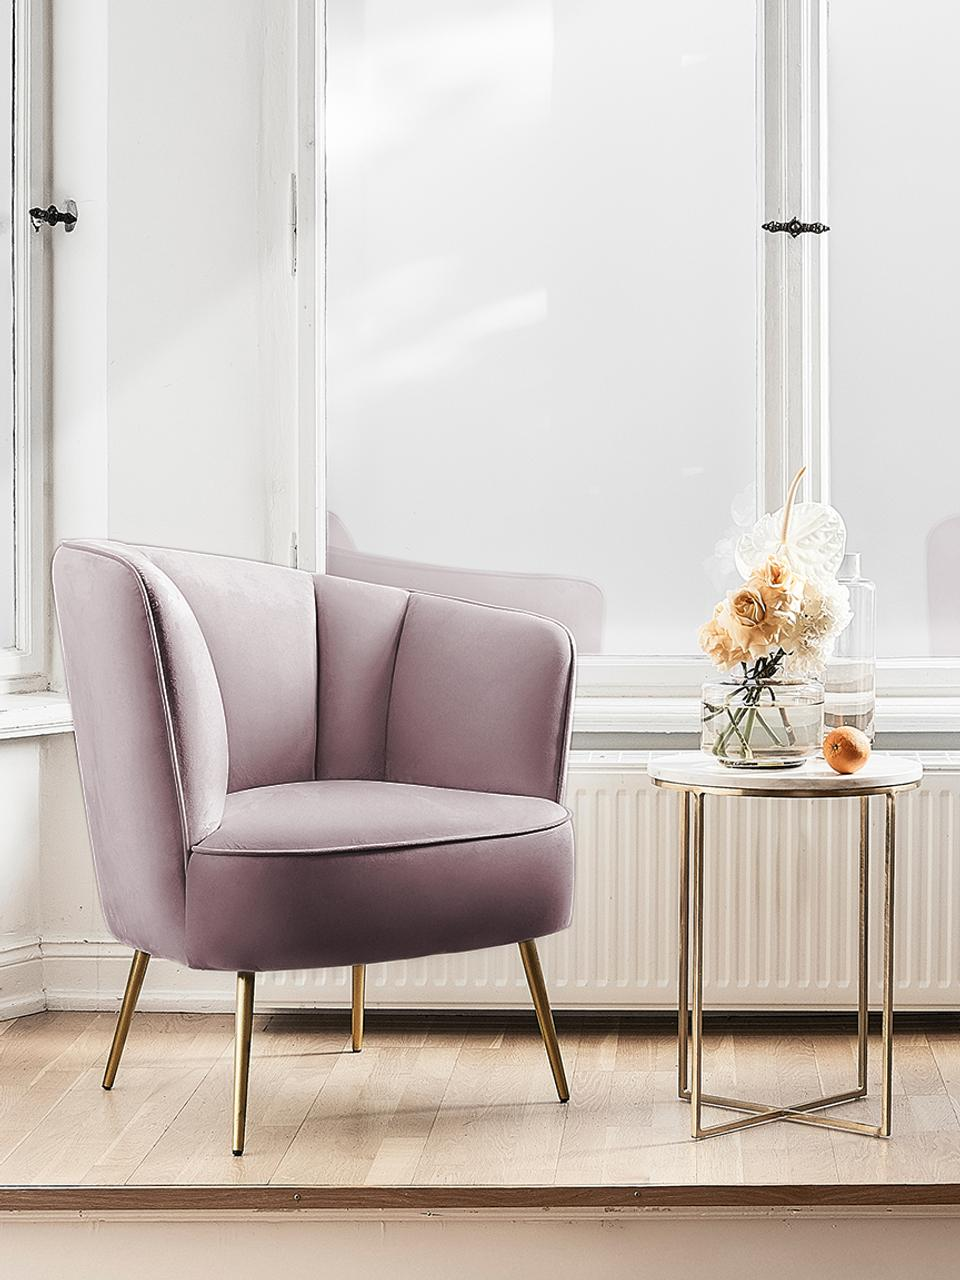 Fauteuil cocktail en velours rose Louise, Velours mauve